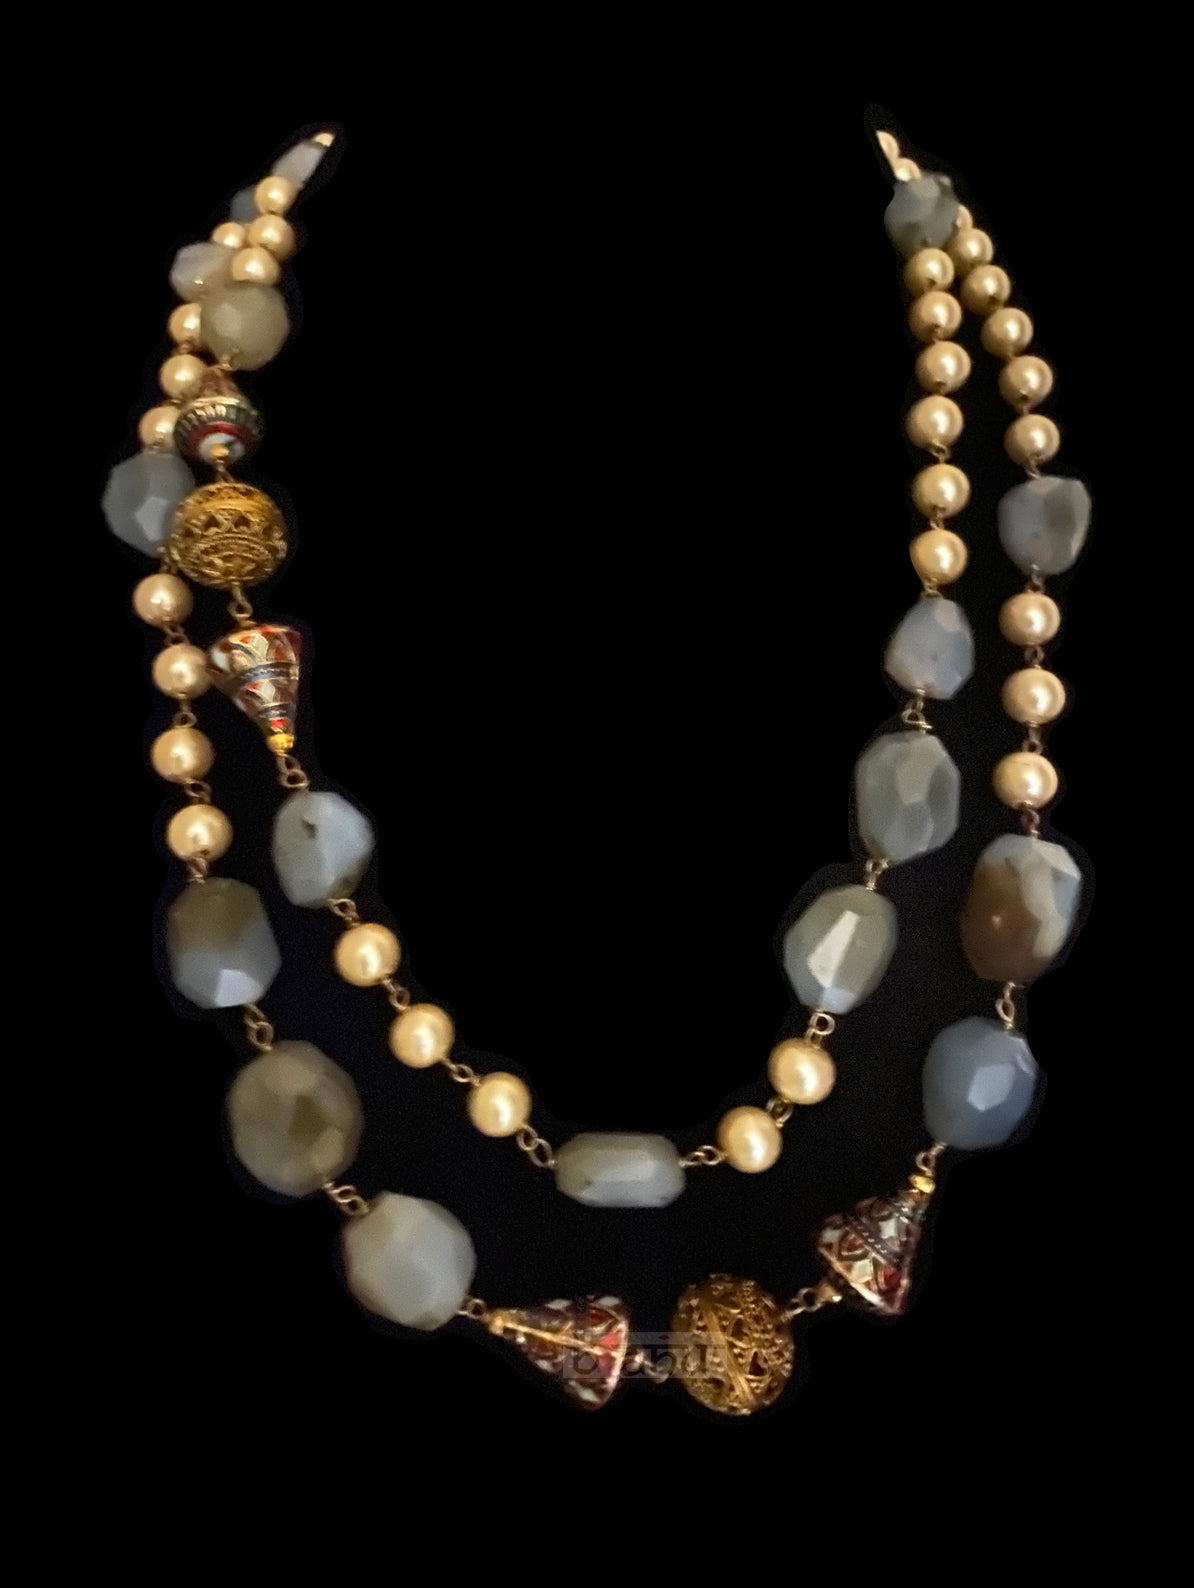 Mantra Necklace With Matte Grey Pearls & Gold Meenakari